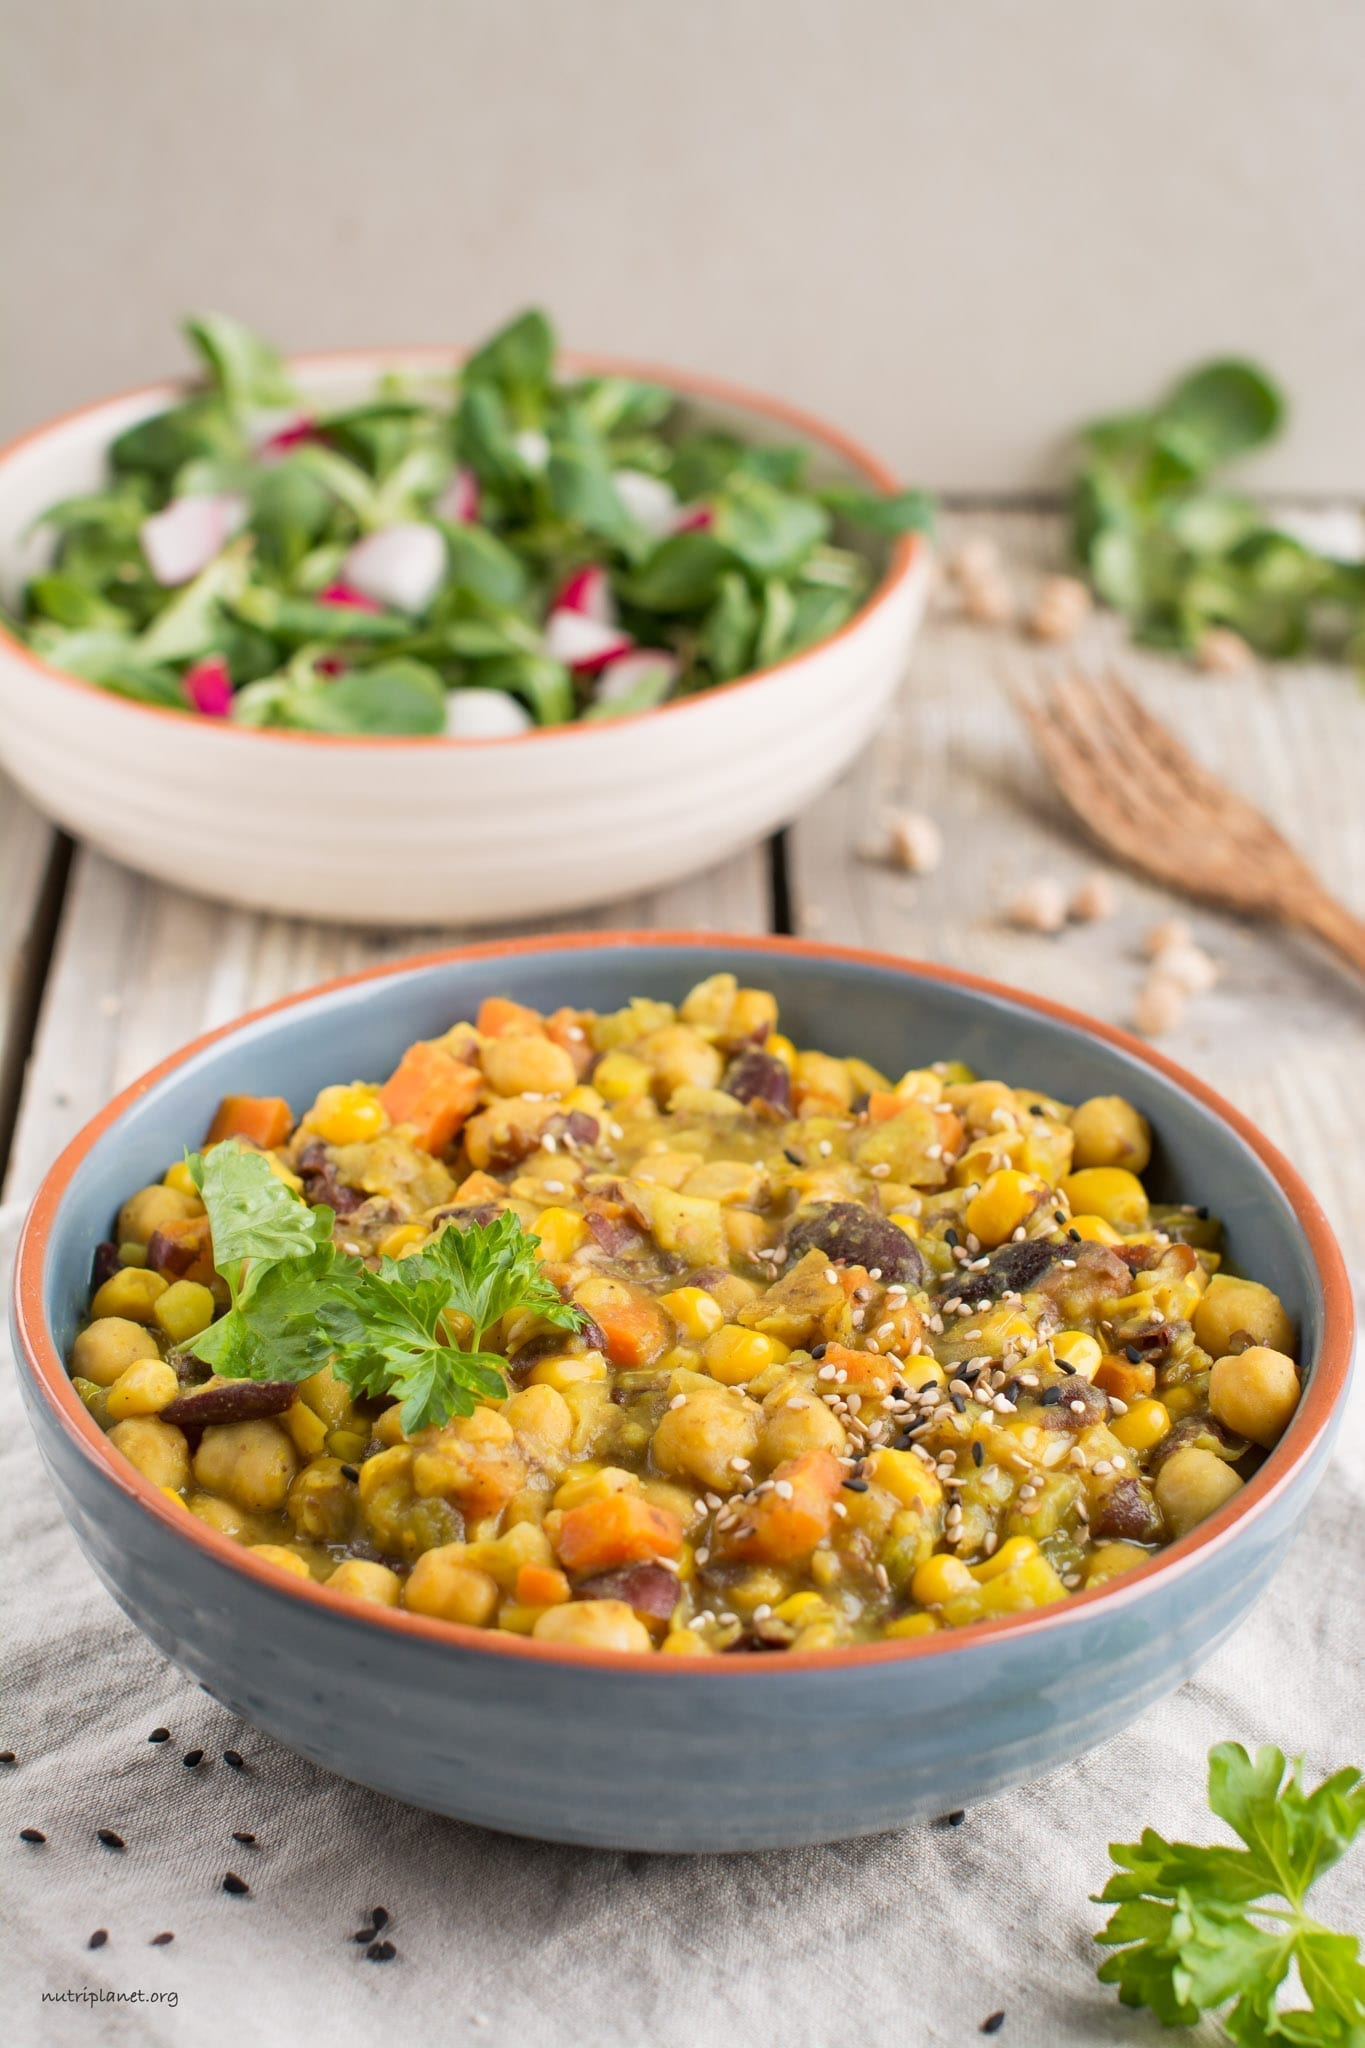 Hearty Vegan Curry with Chickpeas, Beans and Potato